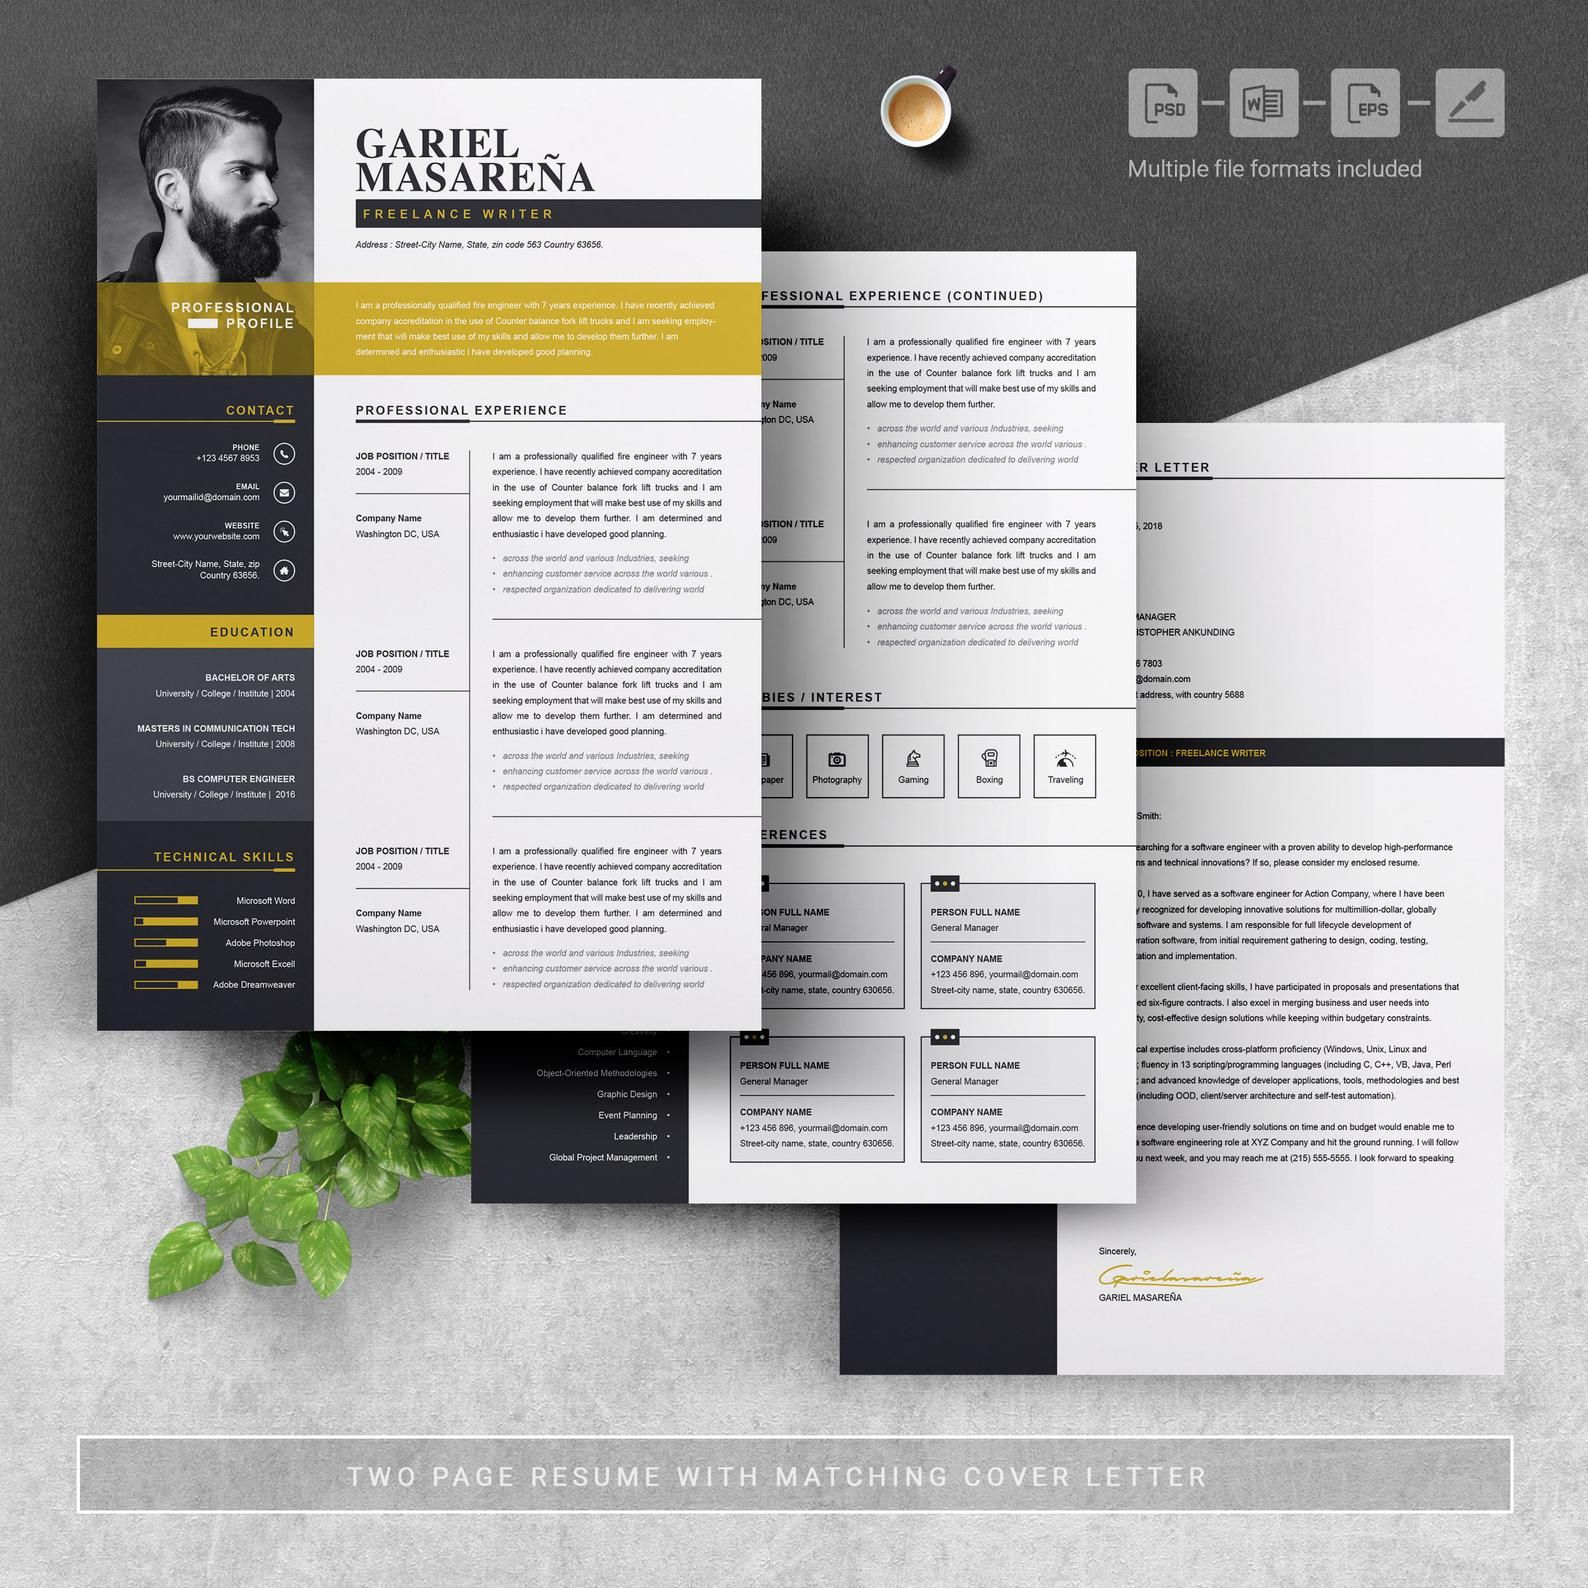 The ultimate 2019 guide for General Manager resume